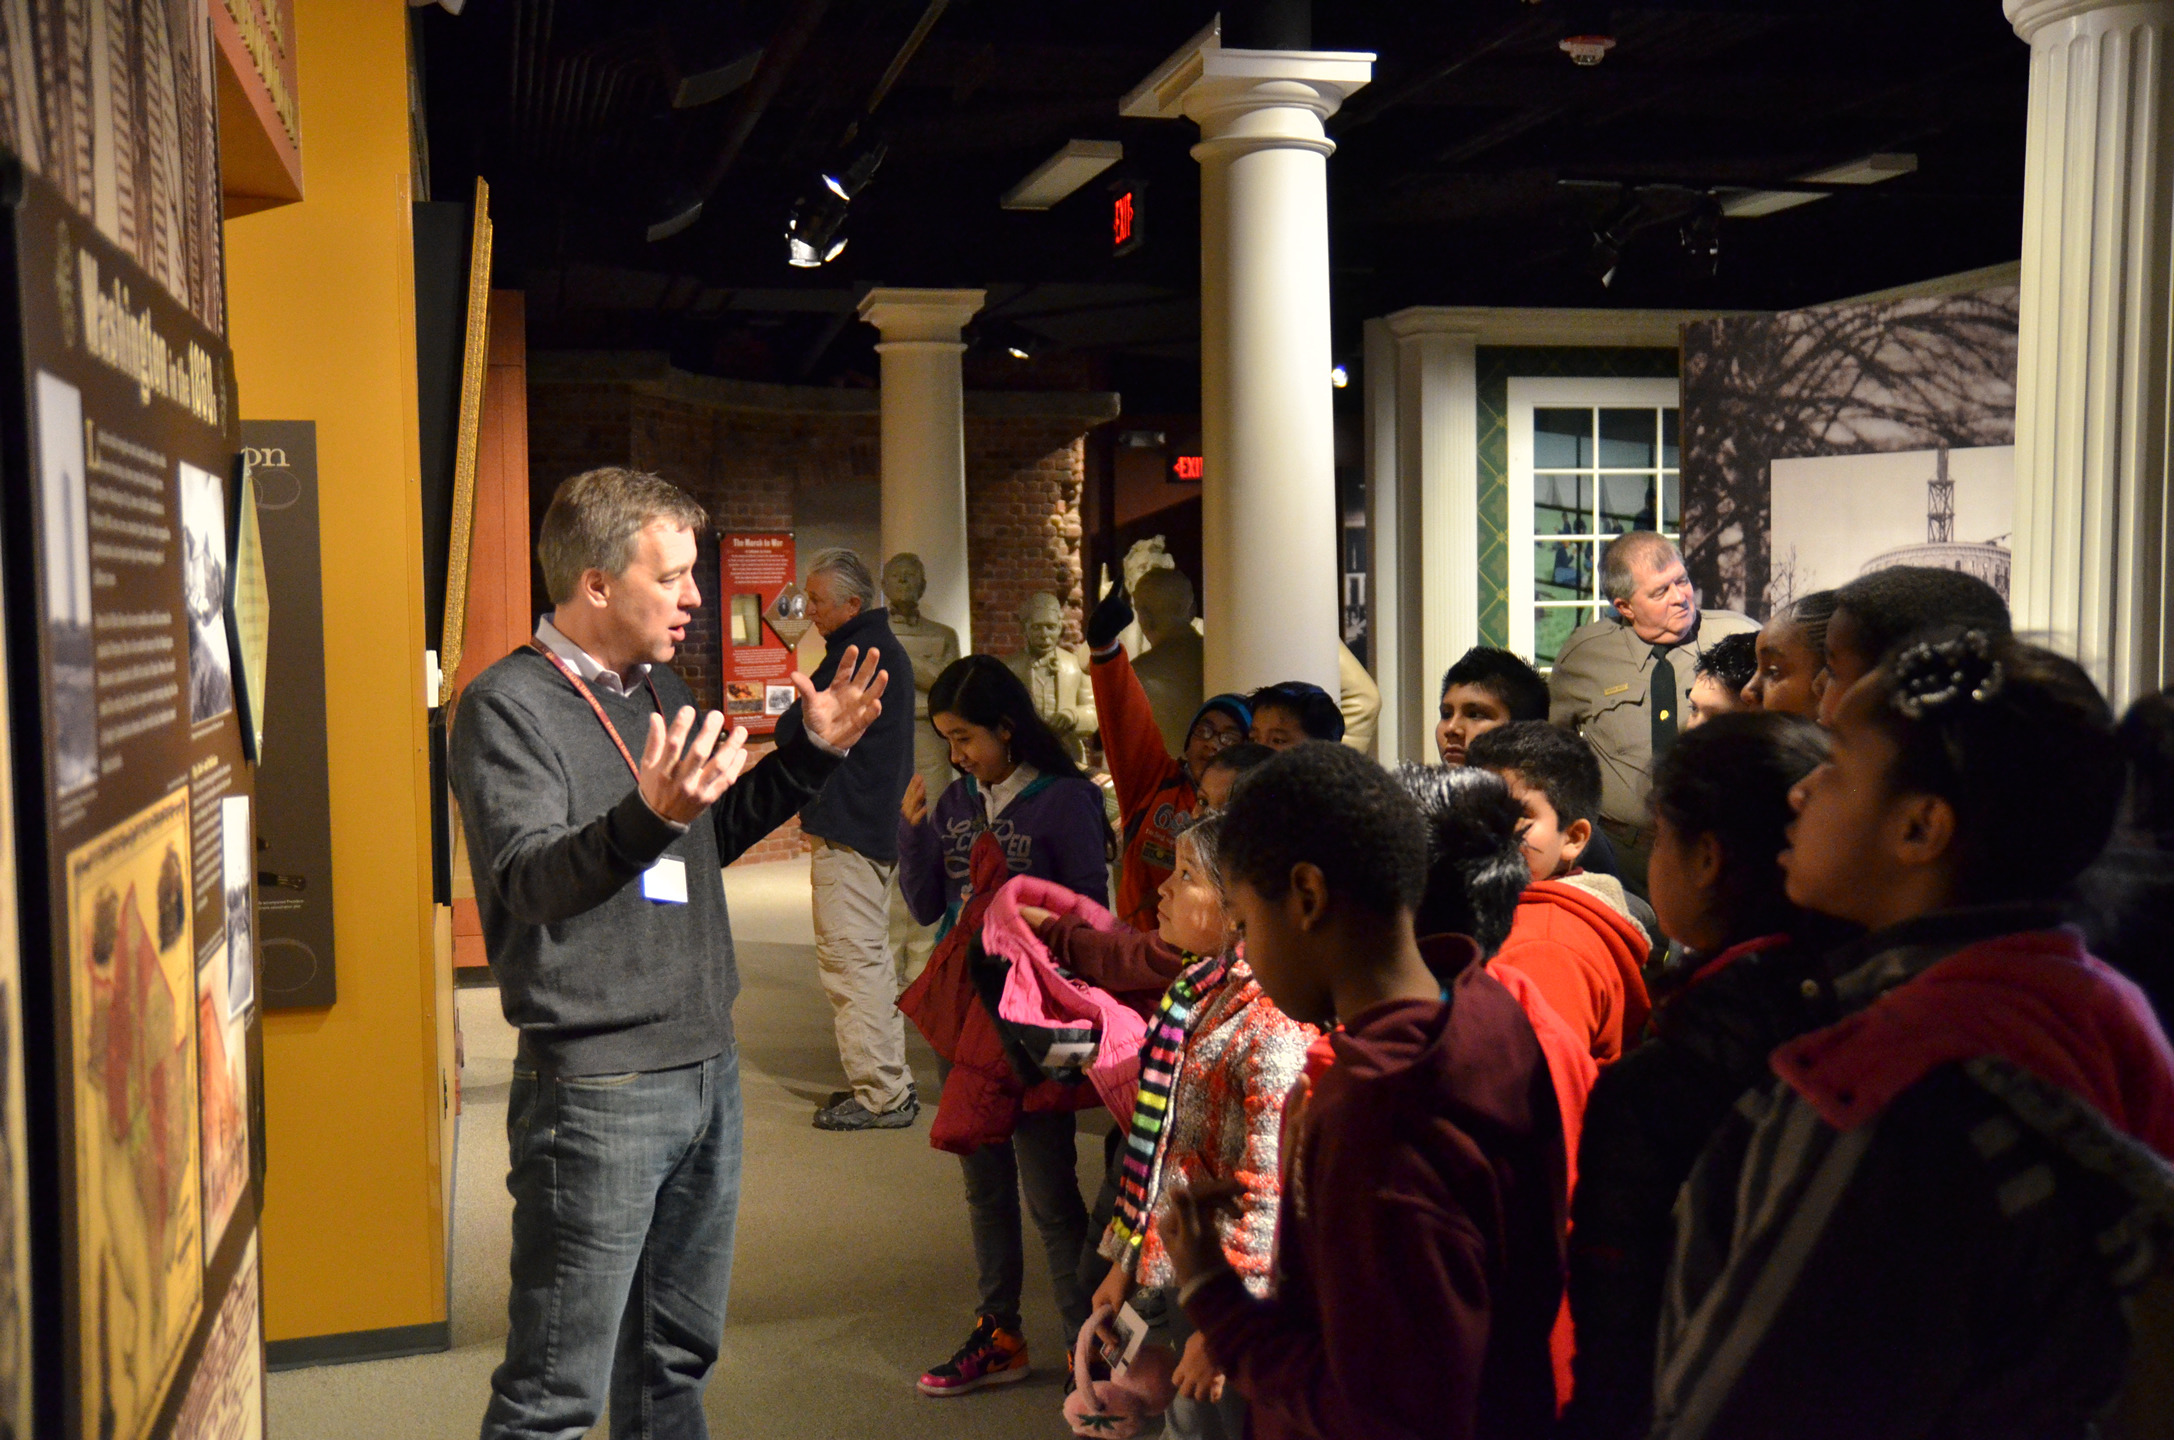 Ford's Theatre education staff leads of tour of the museum for elementary school students.